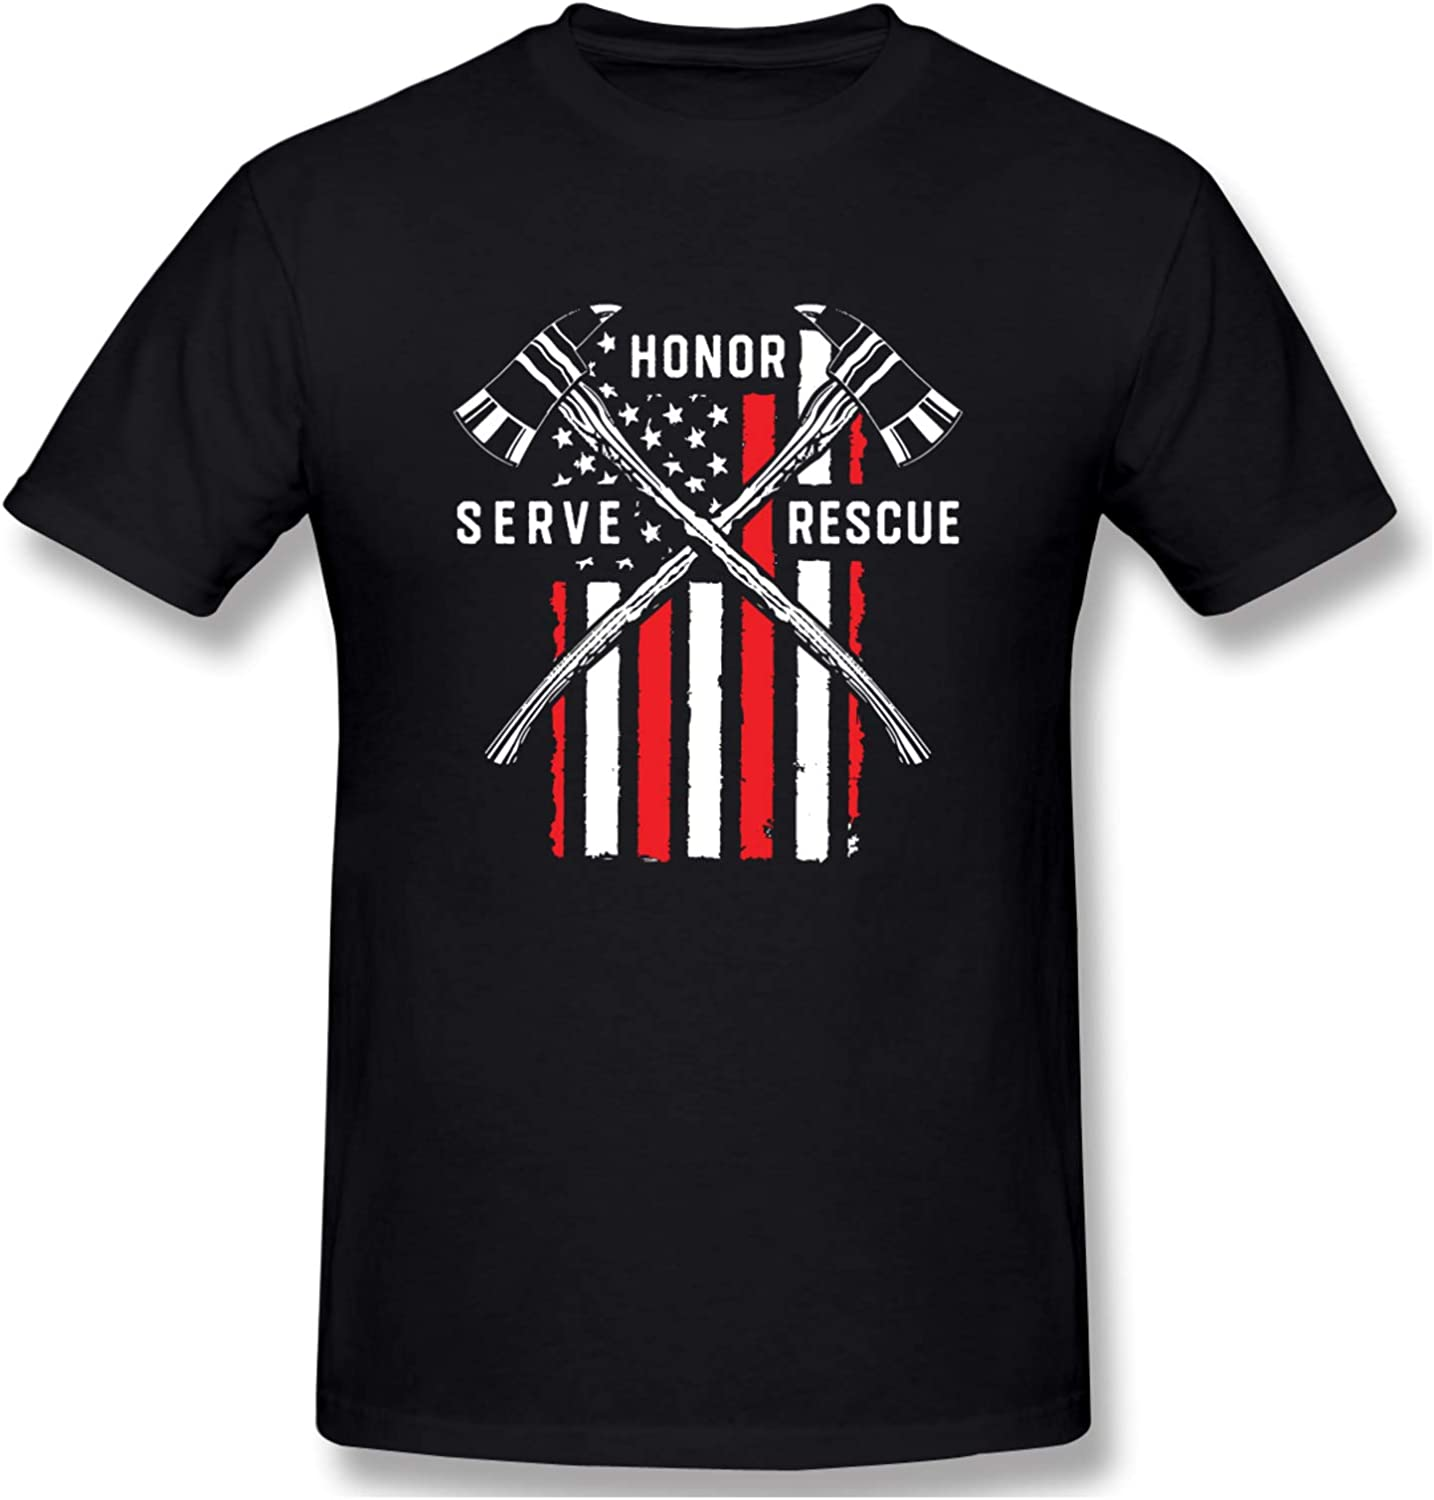 Firefighter Red Line American Flag Men's T-Shirts Short-Sleeve Crew Neck T Classic Tops Casual Shirt